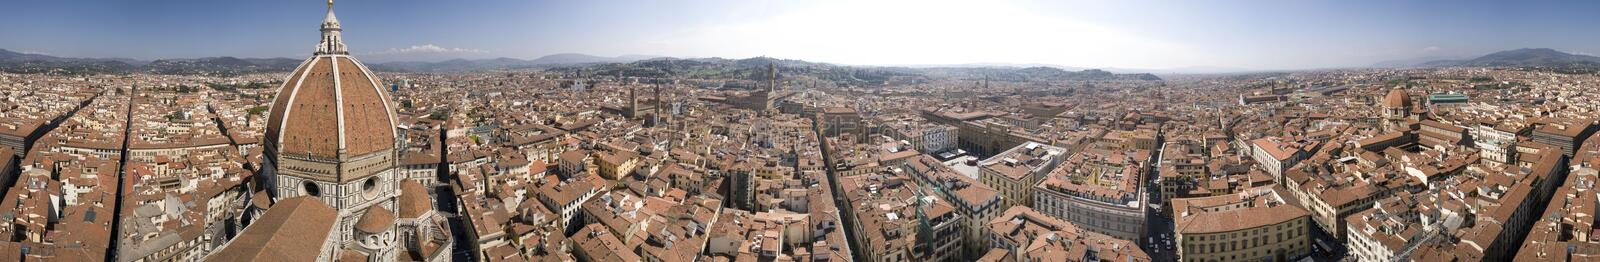 Panorama da torre de Giotto foto de stock royalty free